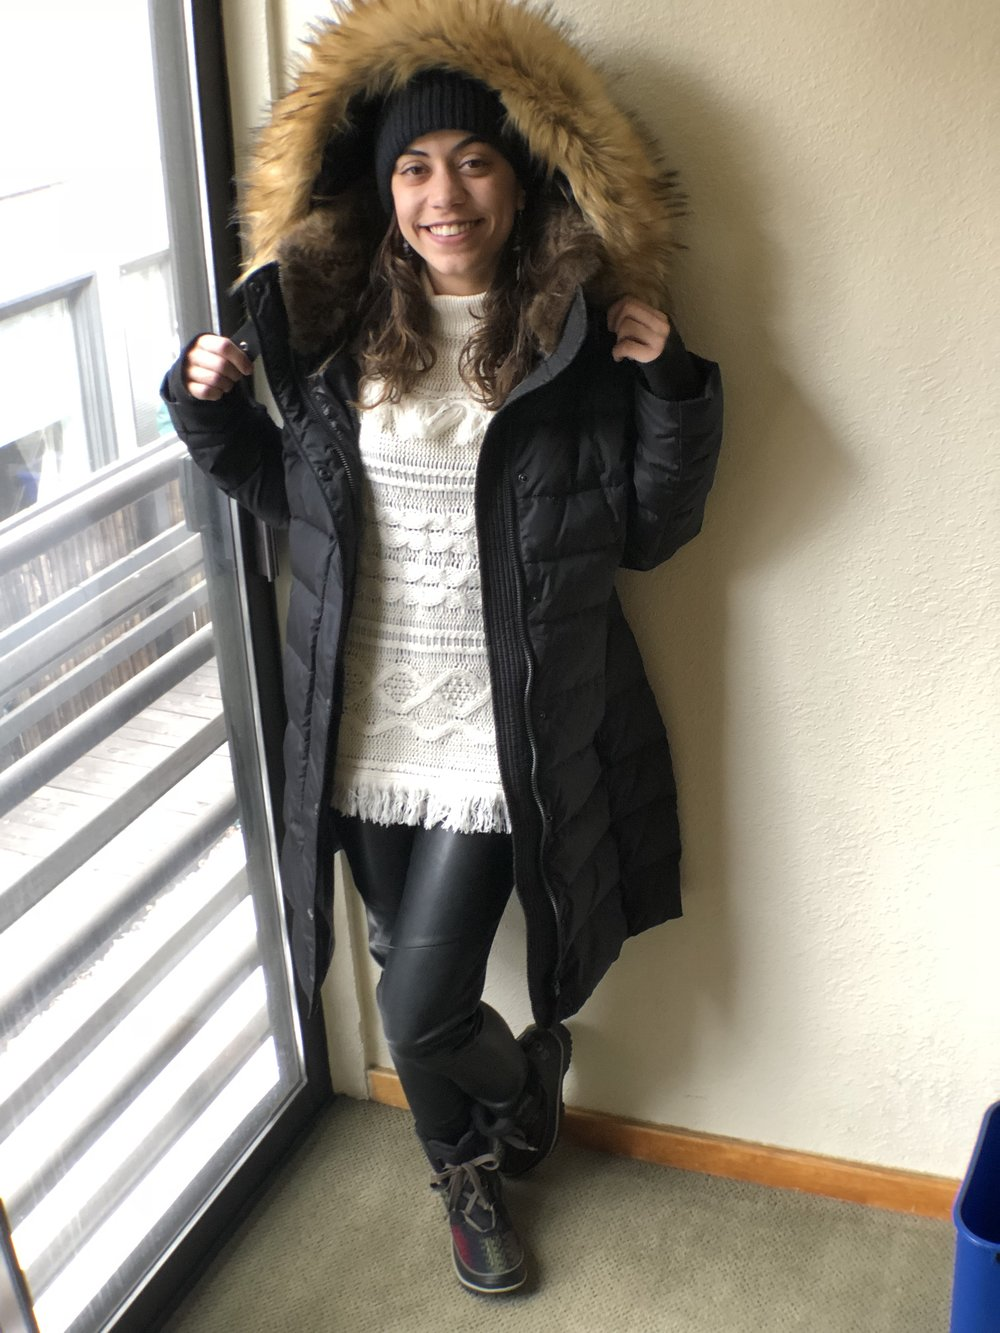 This S13 New York parka was my life savor for the winter months. Warmest coat I have ever owned!  Still on sale at Nordstrom for $179.90, click here to purchase!